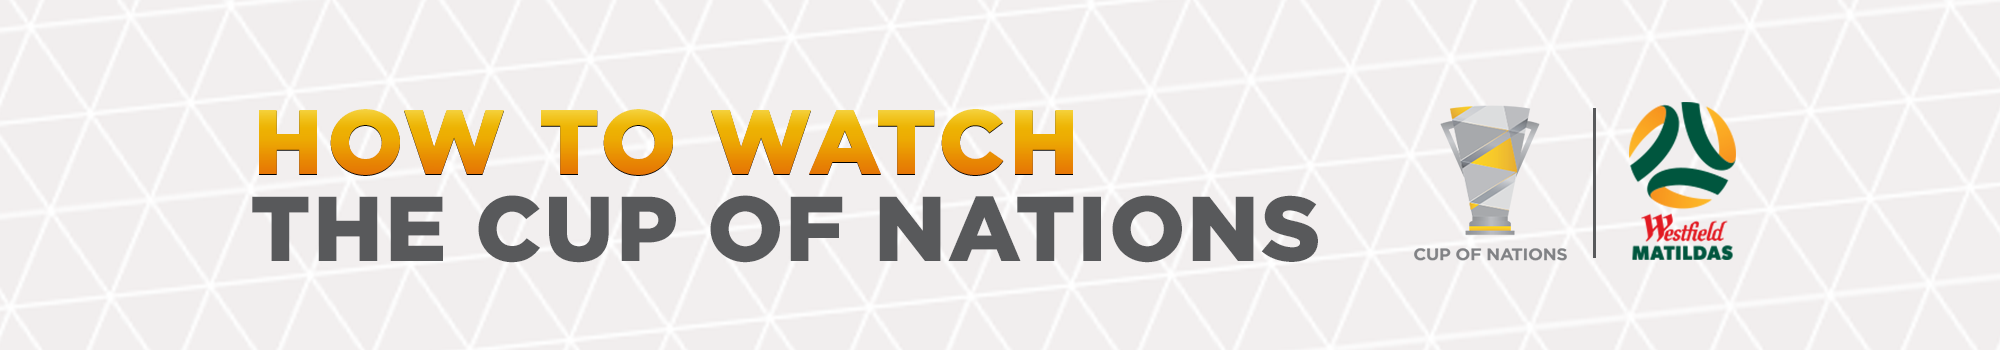 HowtoWatchCupofNations Banner